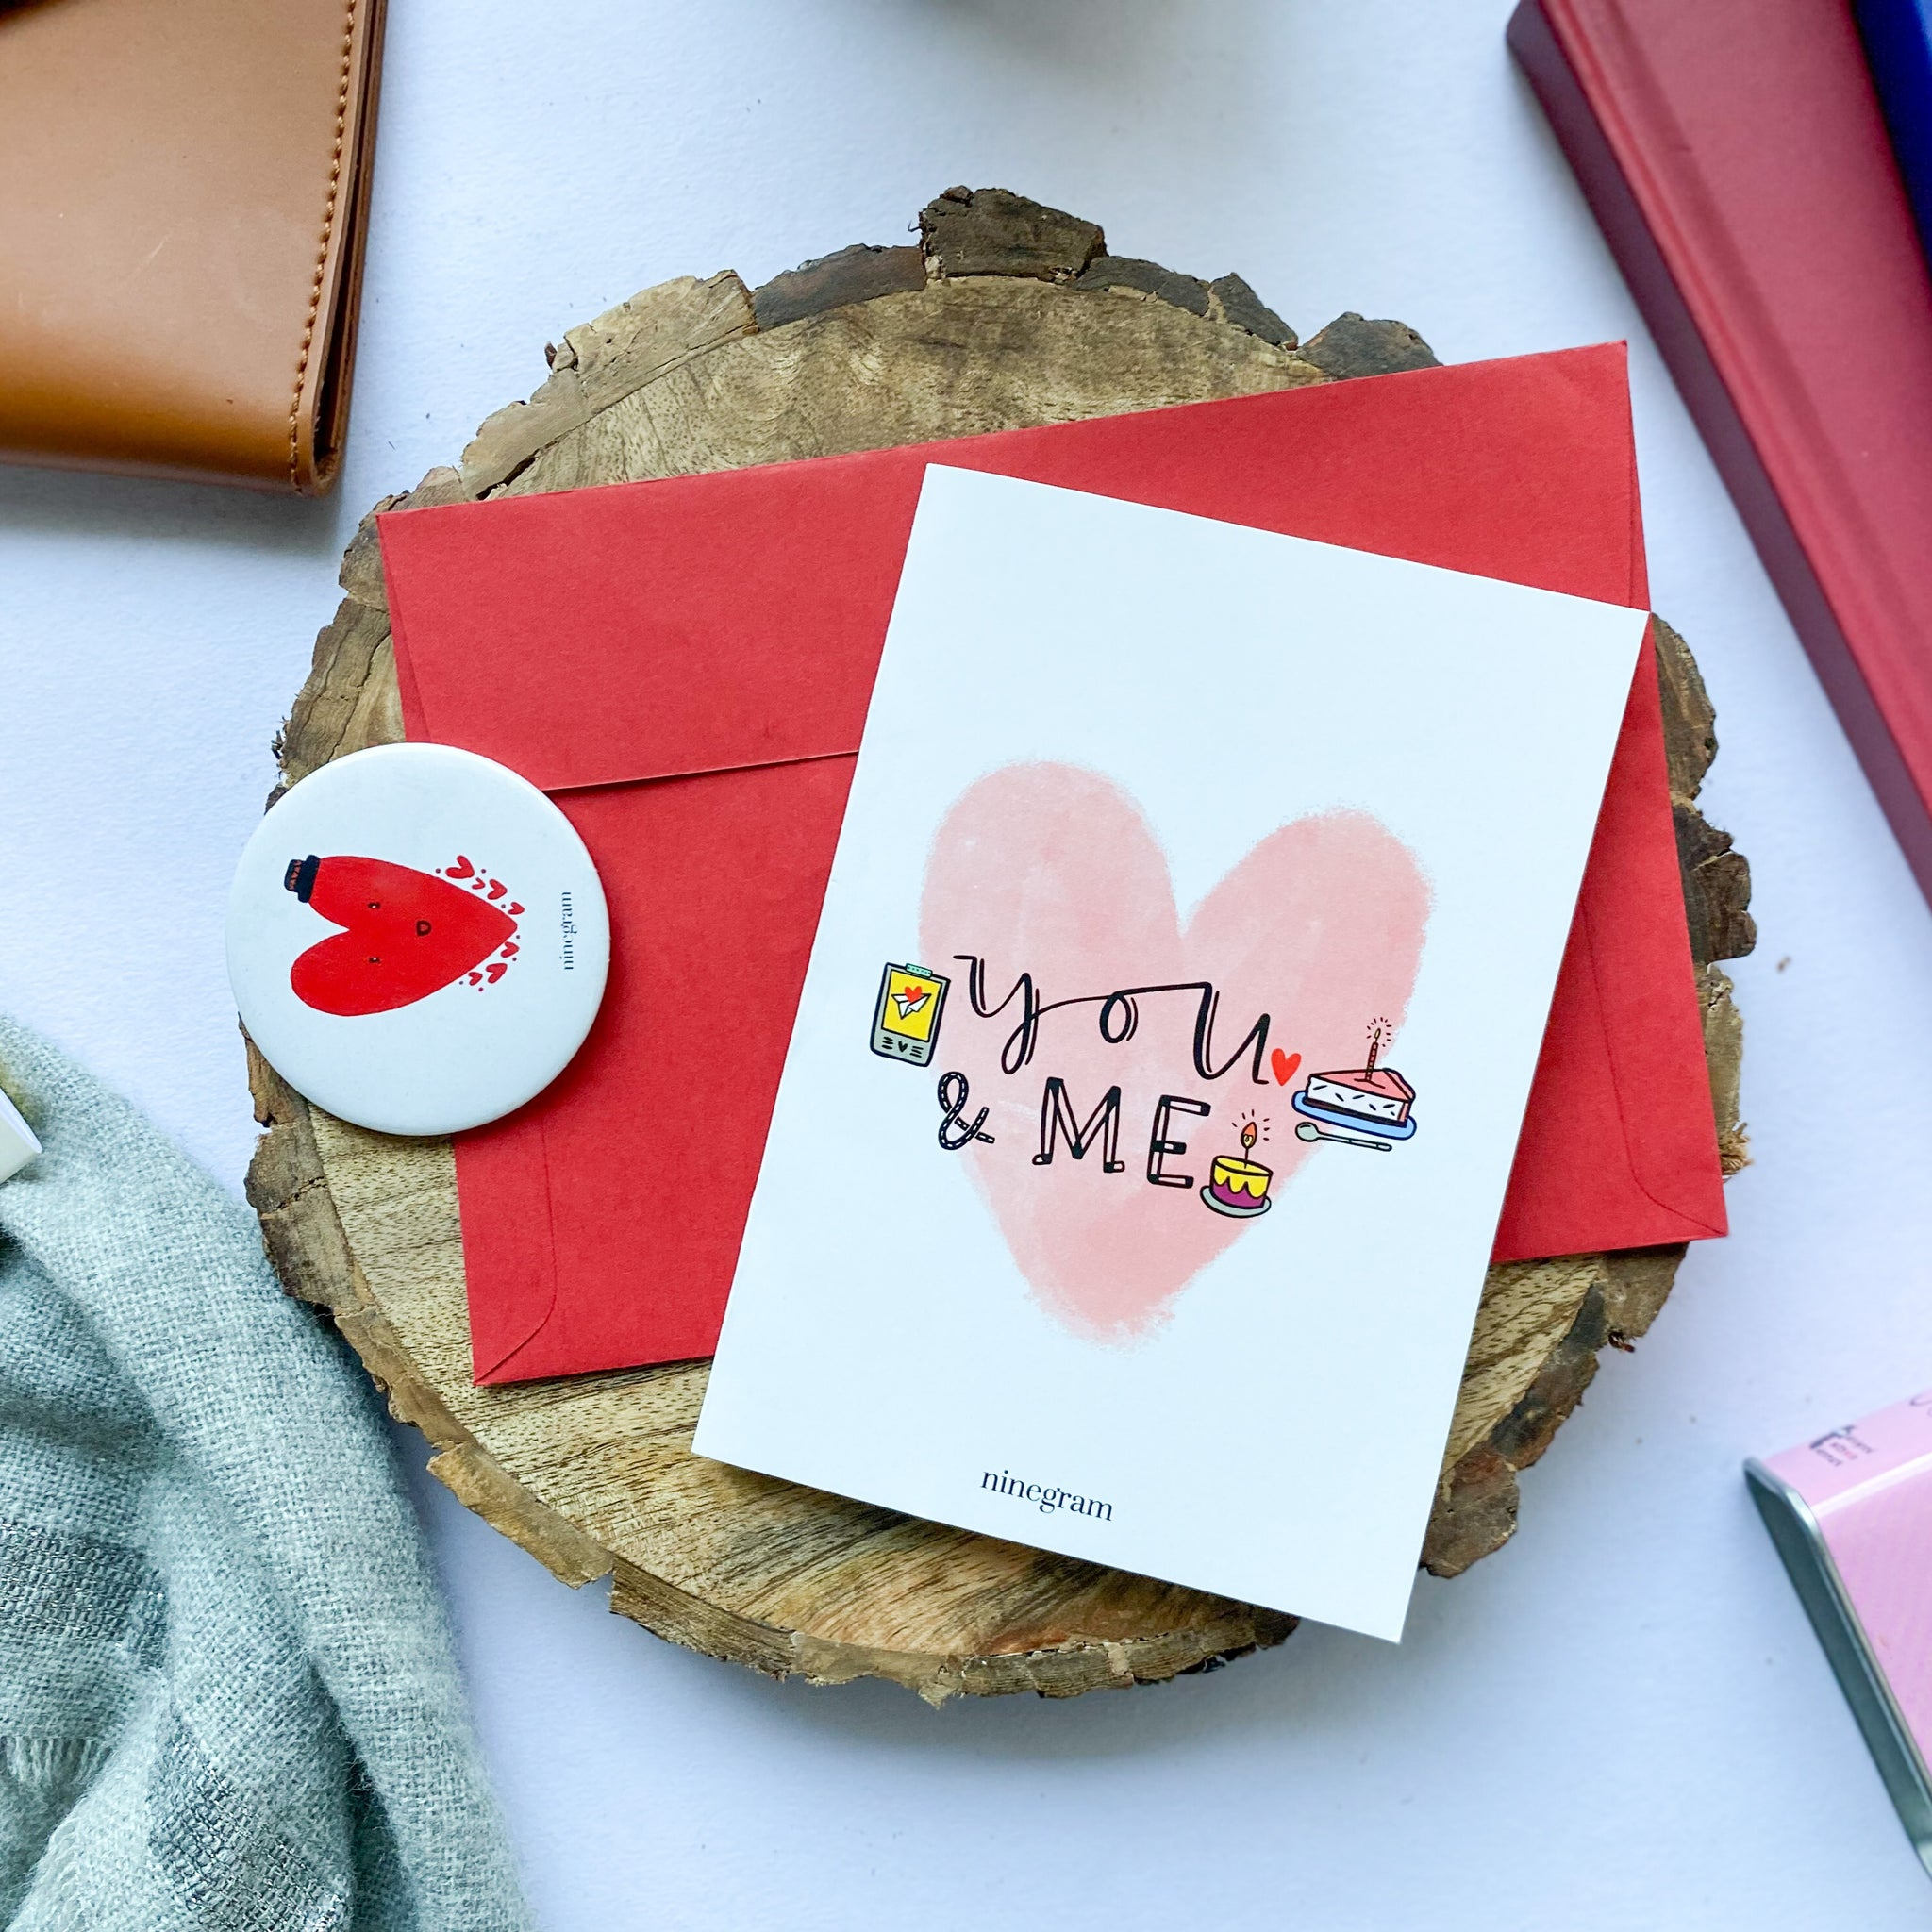 You and me love card + heart badge - ninegram.in